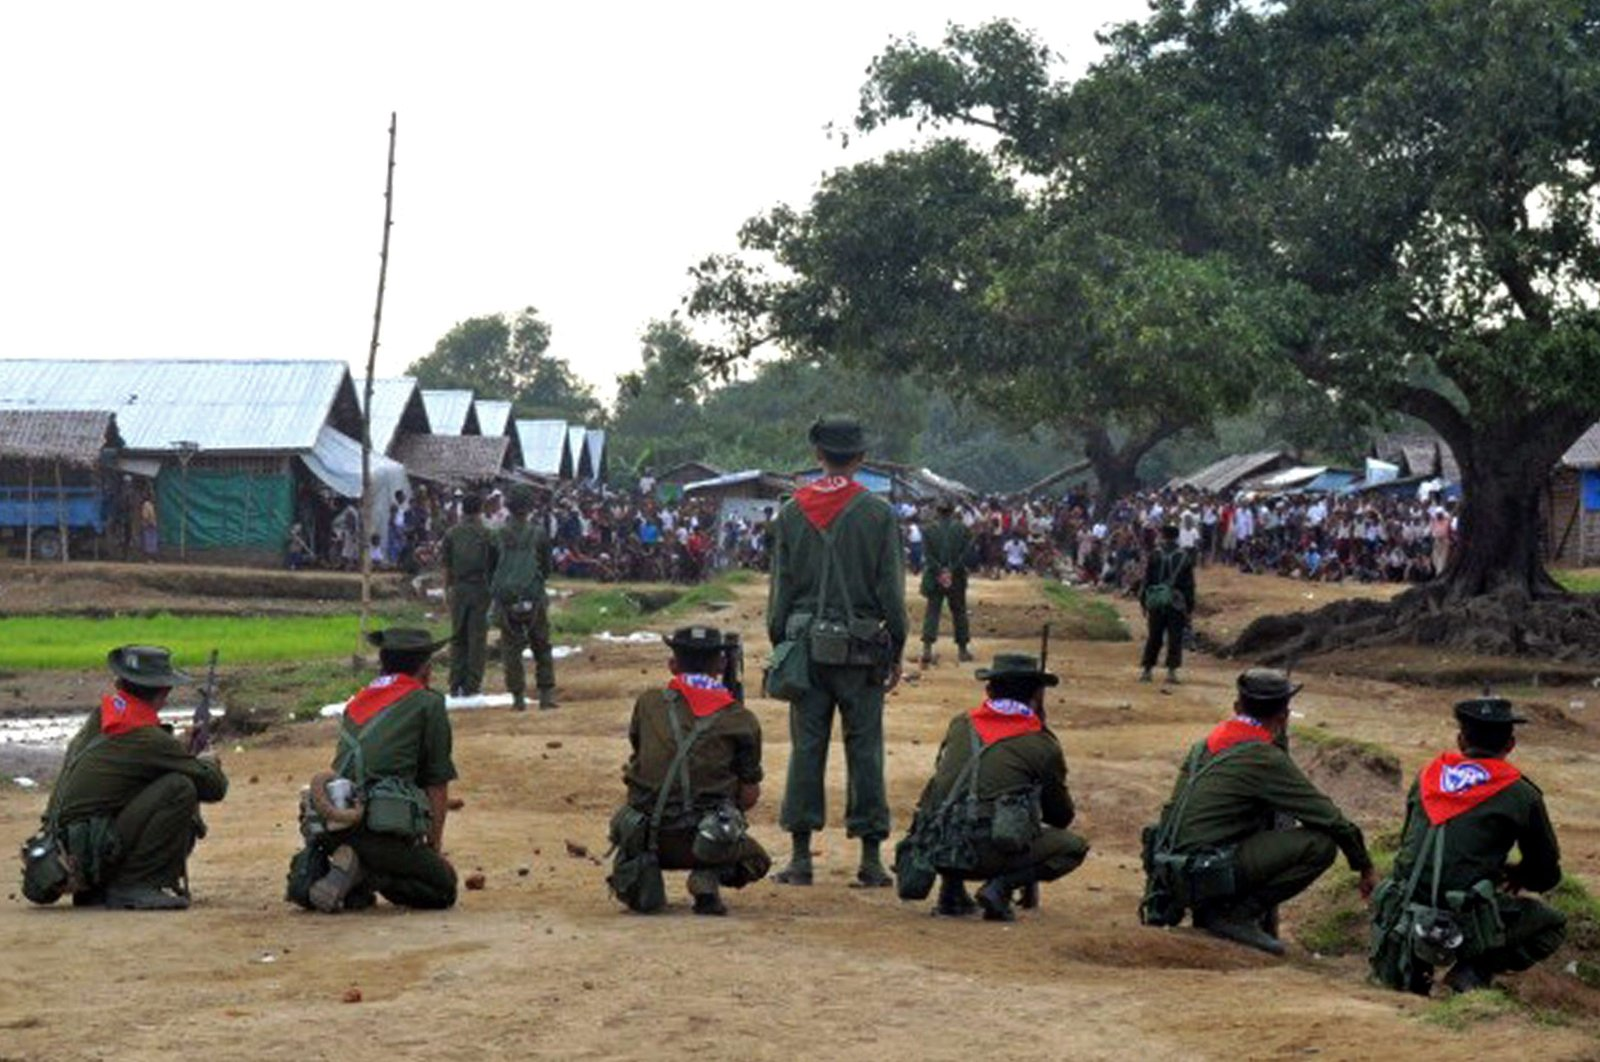 Myanmar security force personnel stand guard while a mob (background) look on following unrest at an Internally Displaced People (IDP) camp for Muslim Rohingyas on the outskirts of Sittwe town in Rakhine State on Aug. 9, 2013. (AFP Photo)